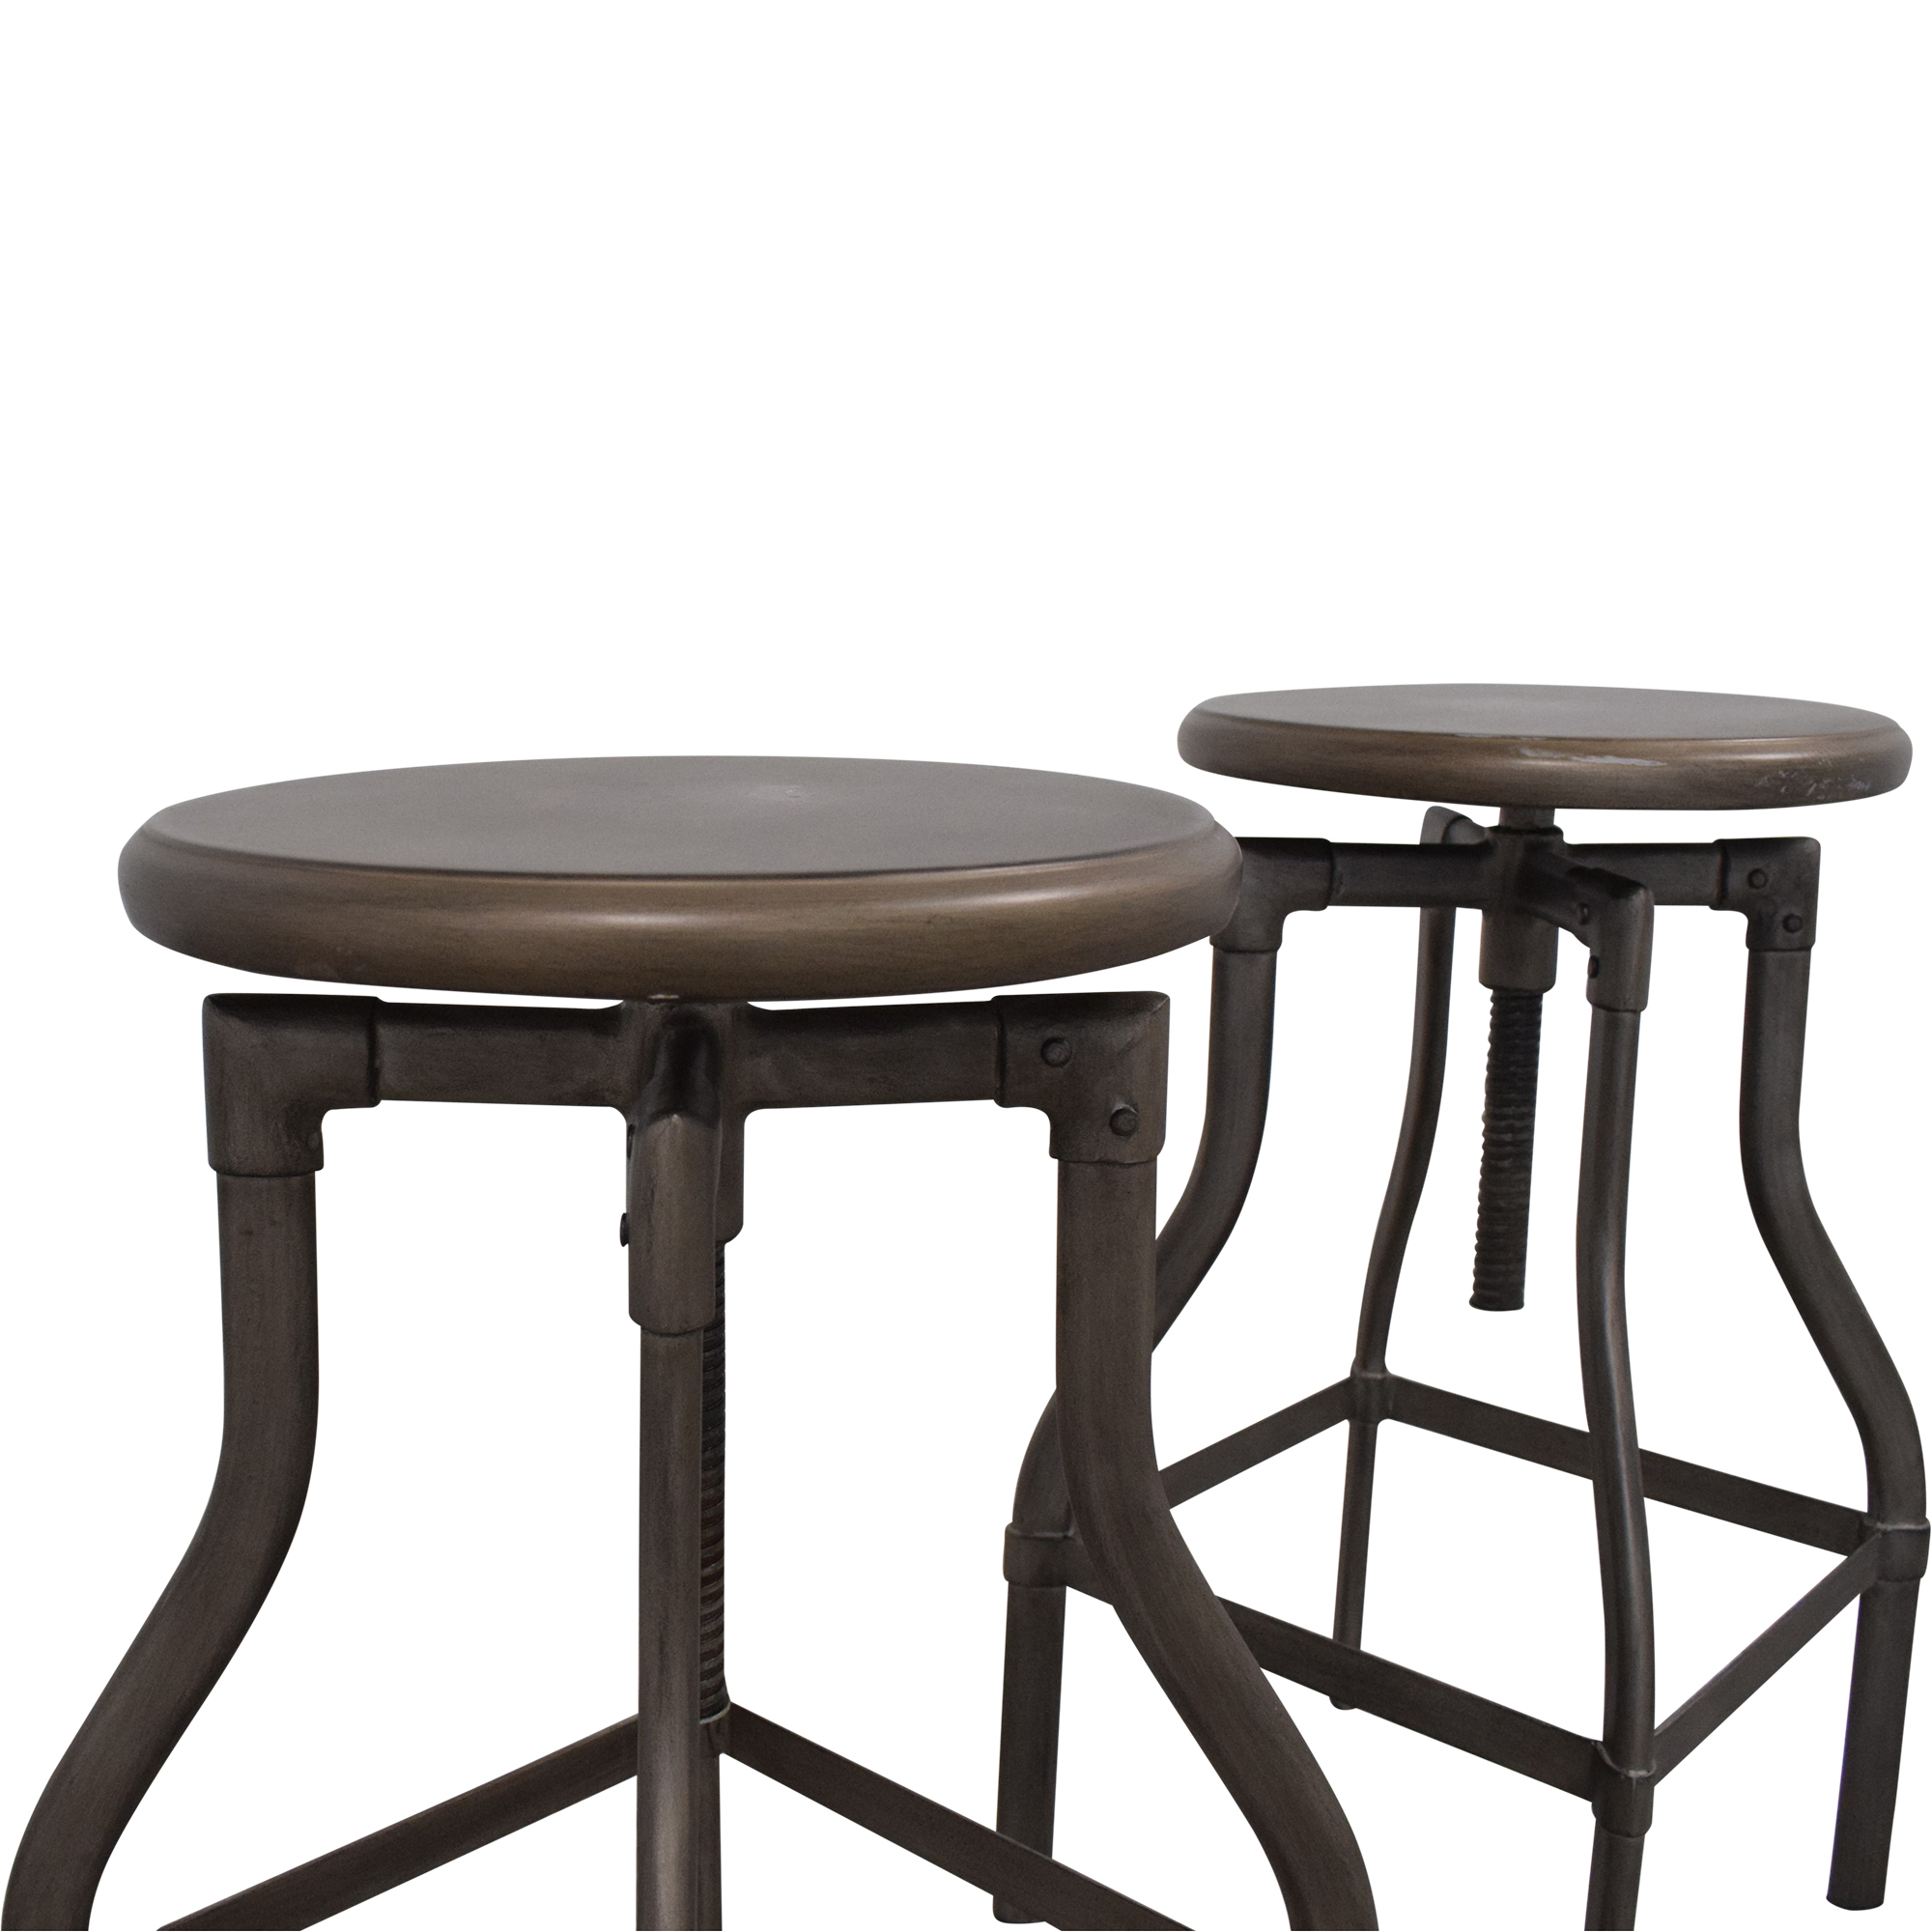 Crate & Barrel Turner Adjustable Stools sale